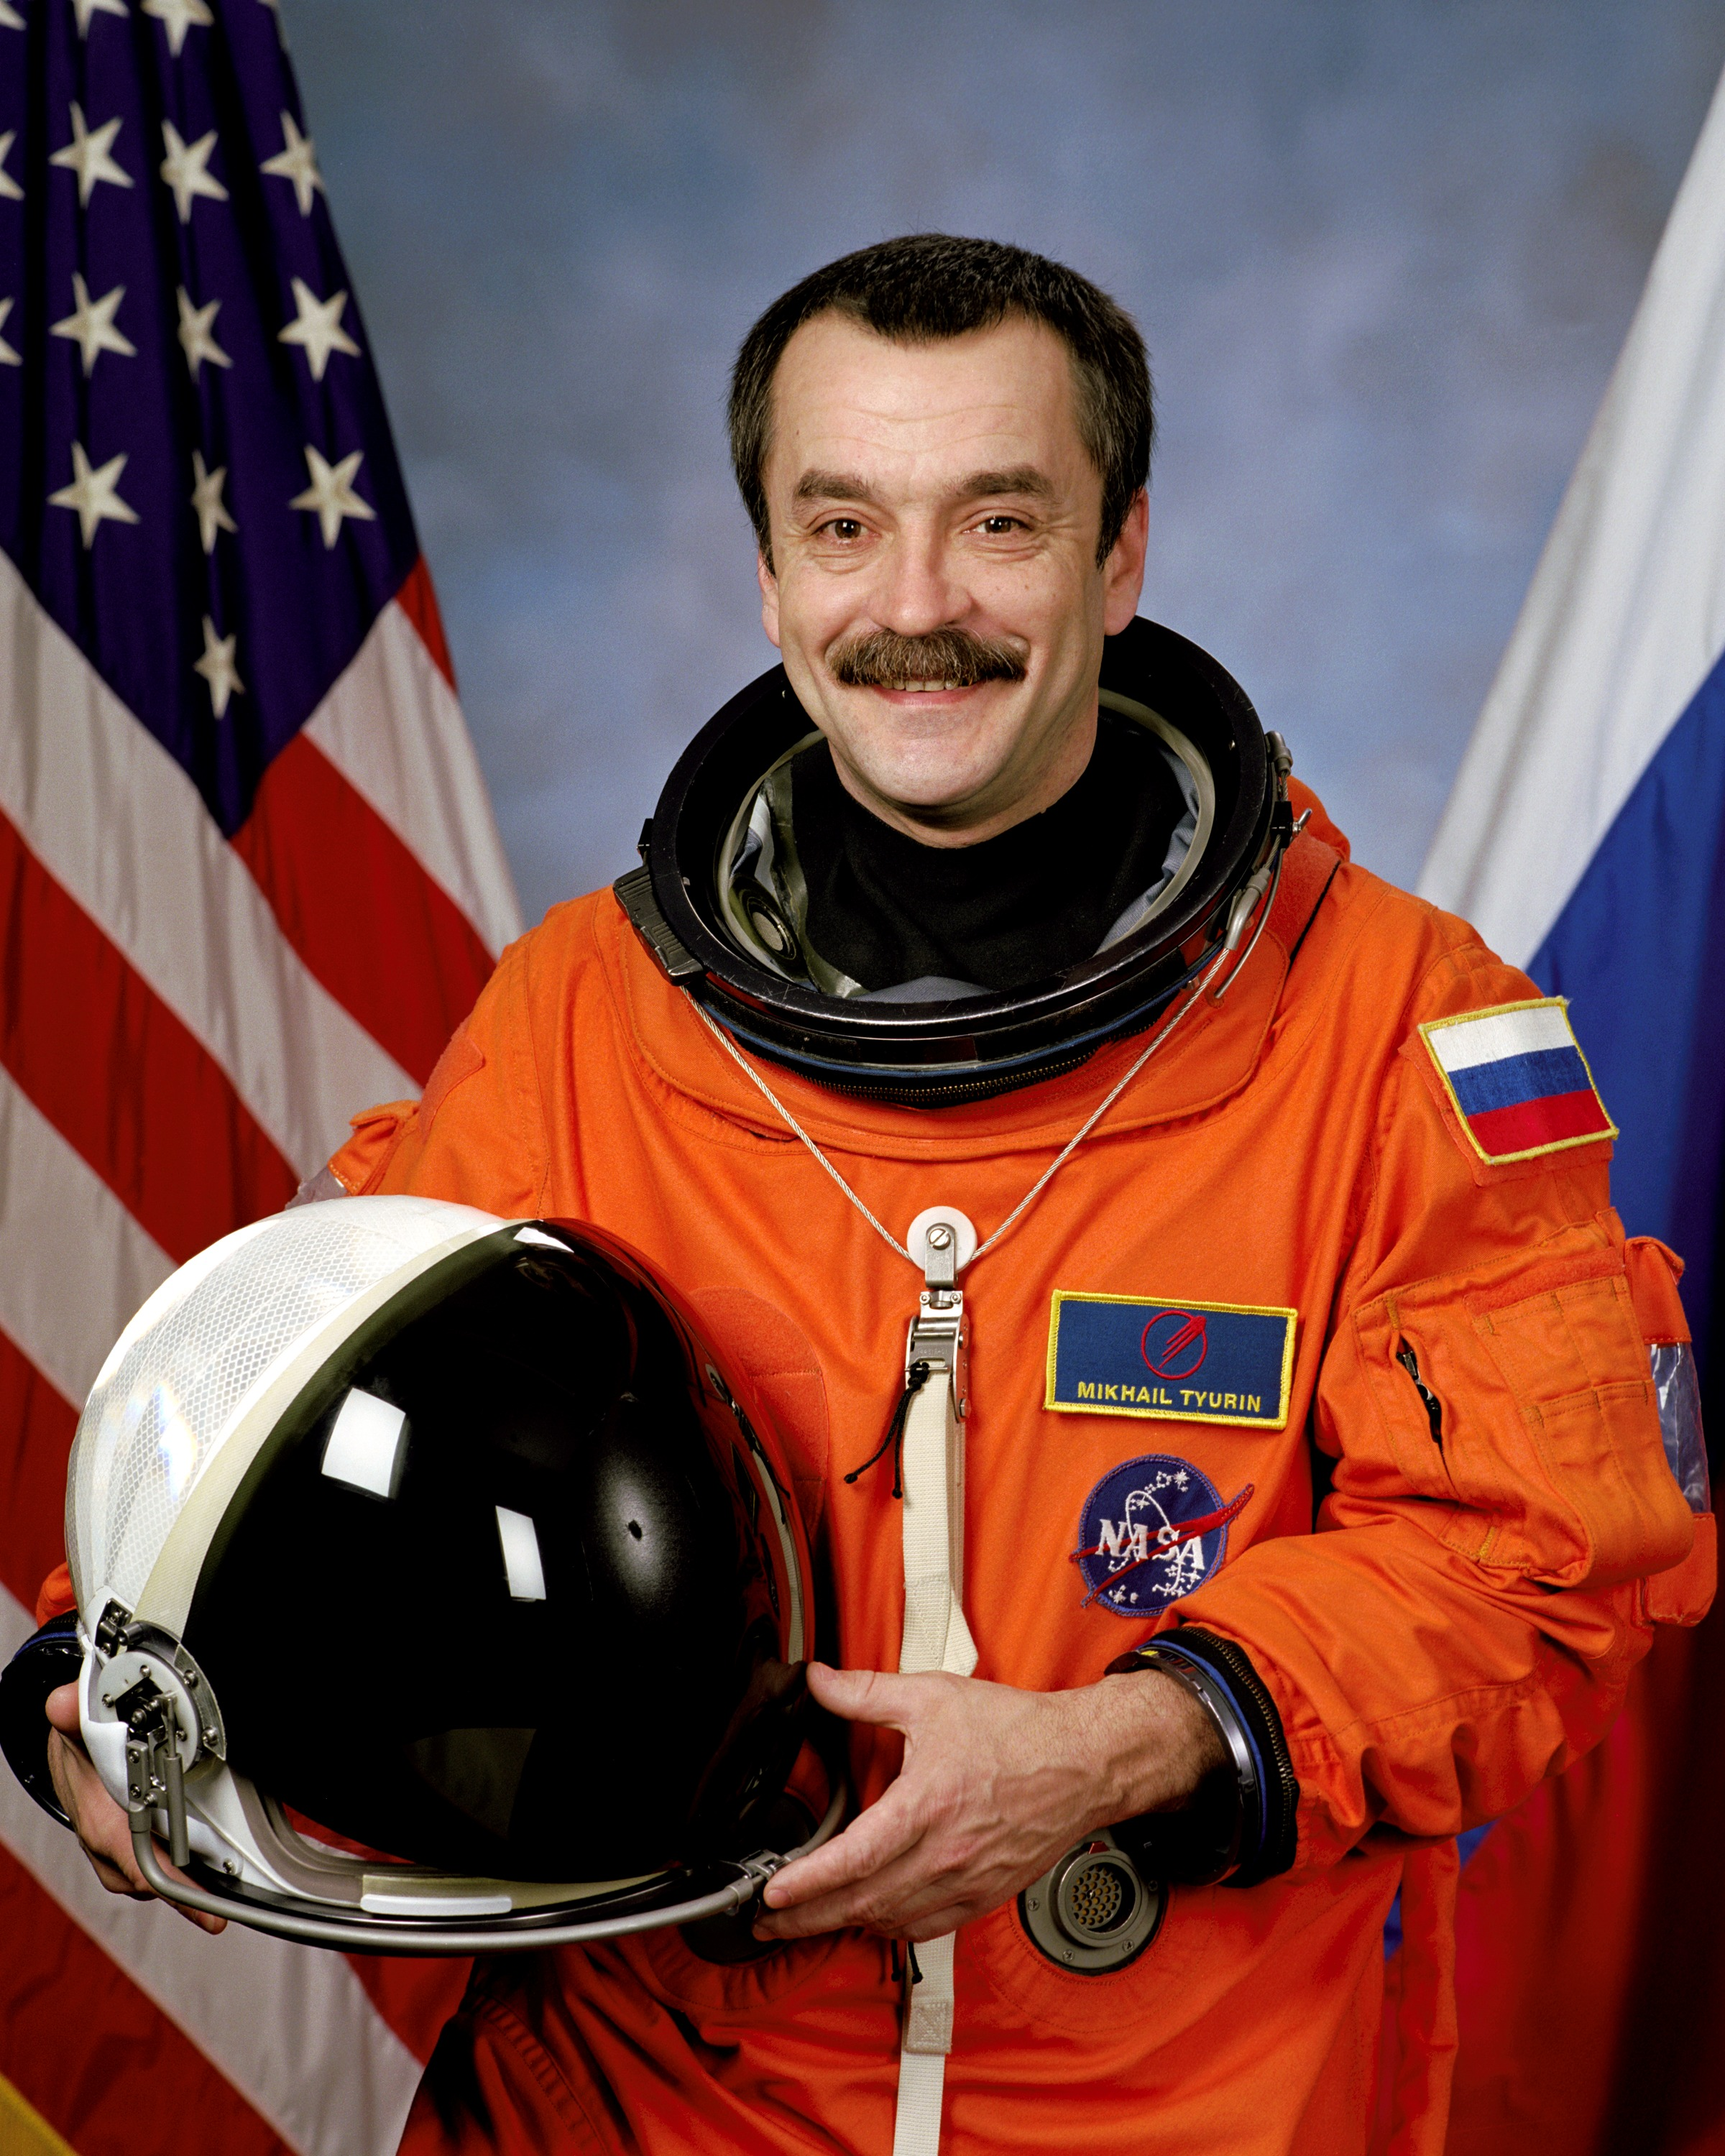 Space in Images - 2006 - 10 - Russian cosmonaut Mikhail Tyurin